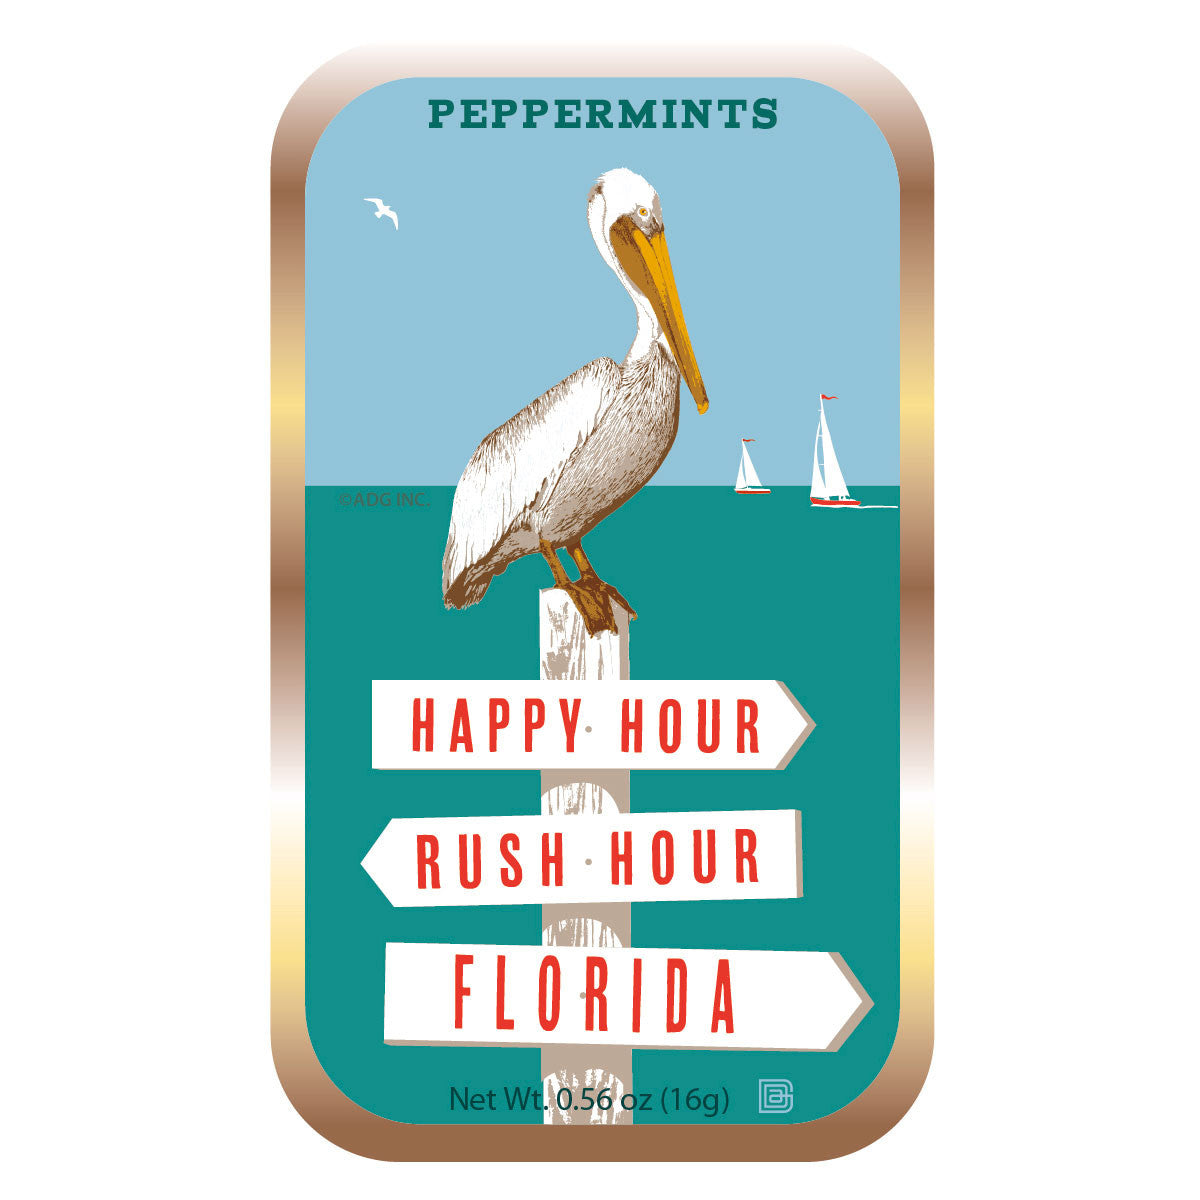 Happy Hour Florida - 1295A